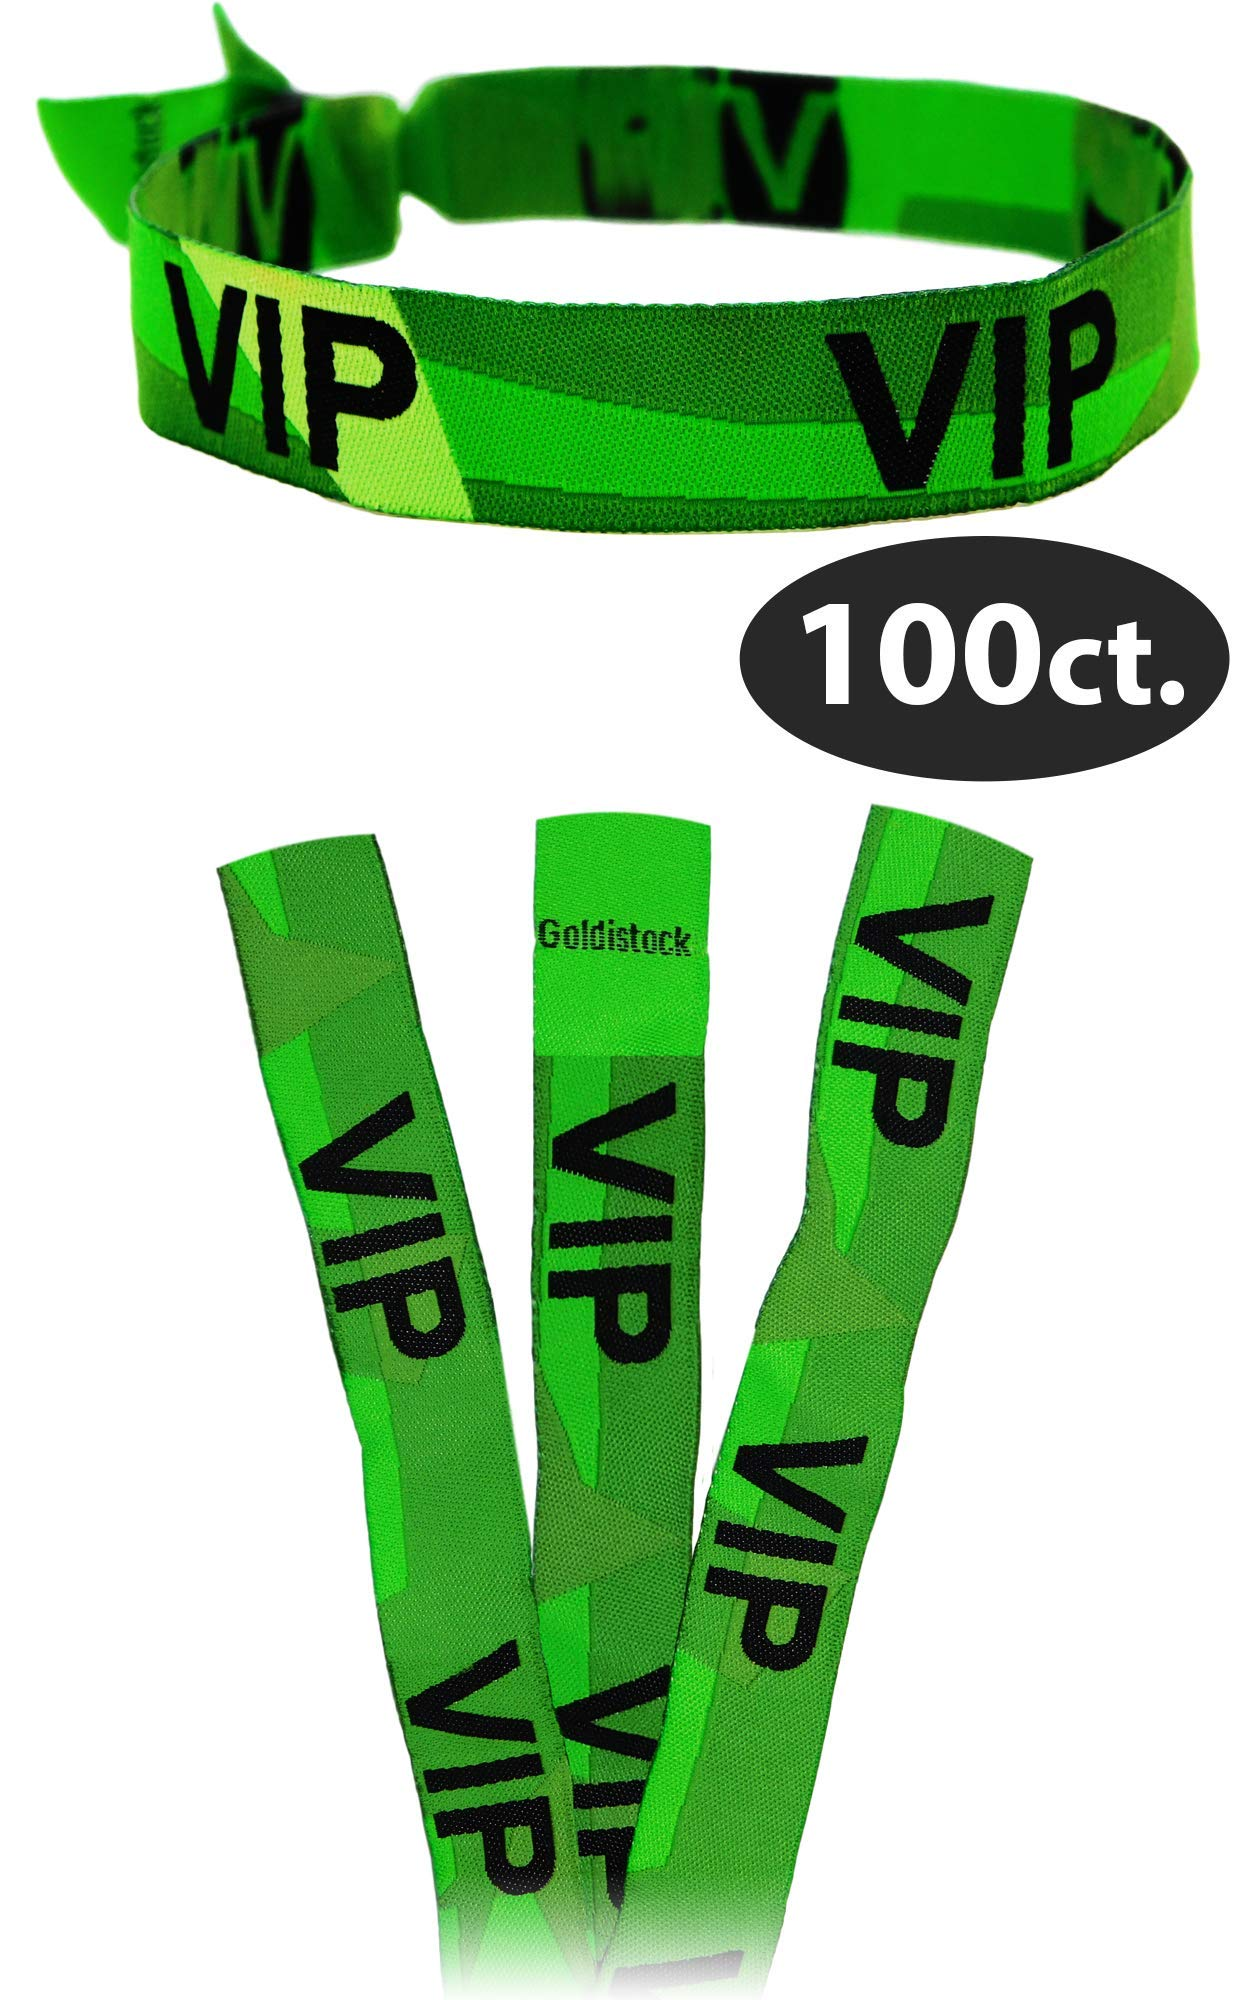 Green VIP 3/4'' Wristbands from Goldistock - Strong Woven Cloth Armbands - Security with Style Arm Bands - for Upscale Events - Upgrade from Tyvek Wrist Bands - 100 Count by Goldistock